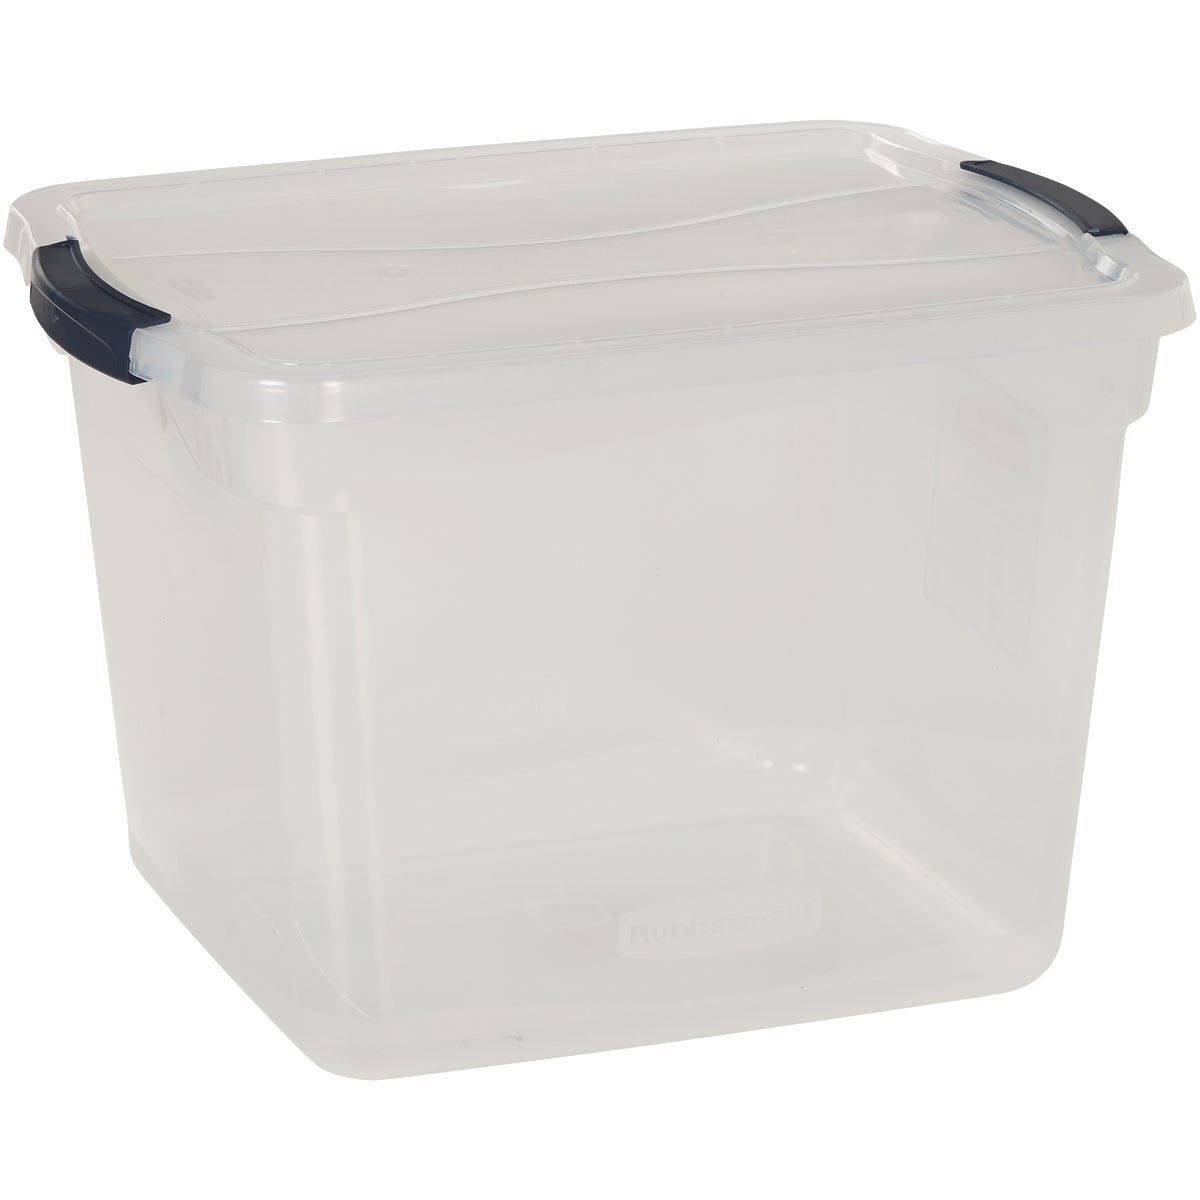 30QT LATCHING STORAGE - 3Q2500CLMCB by Rubbermaid Home